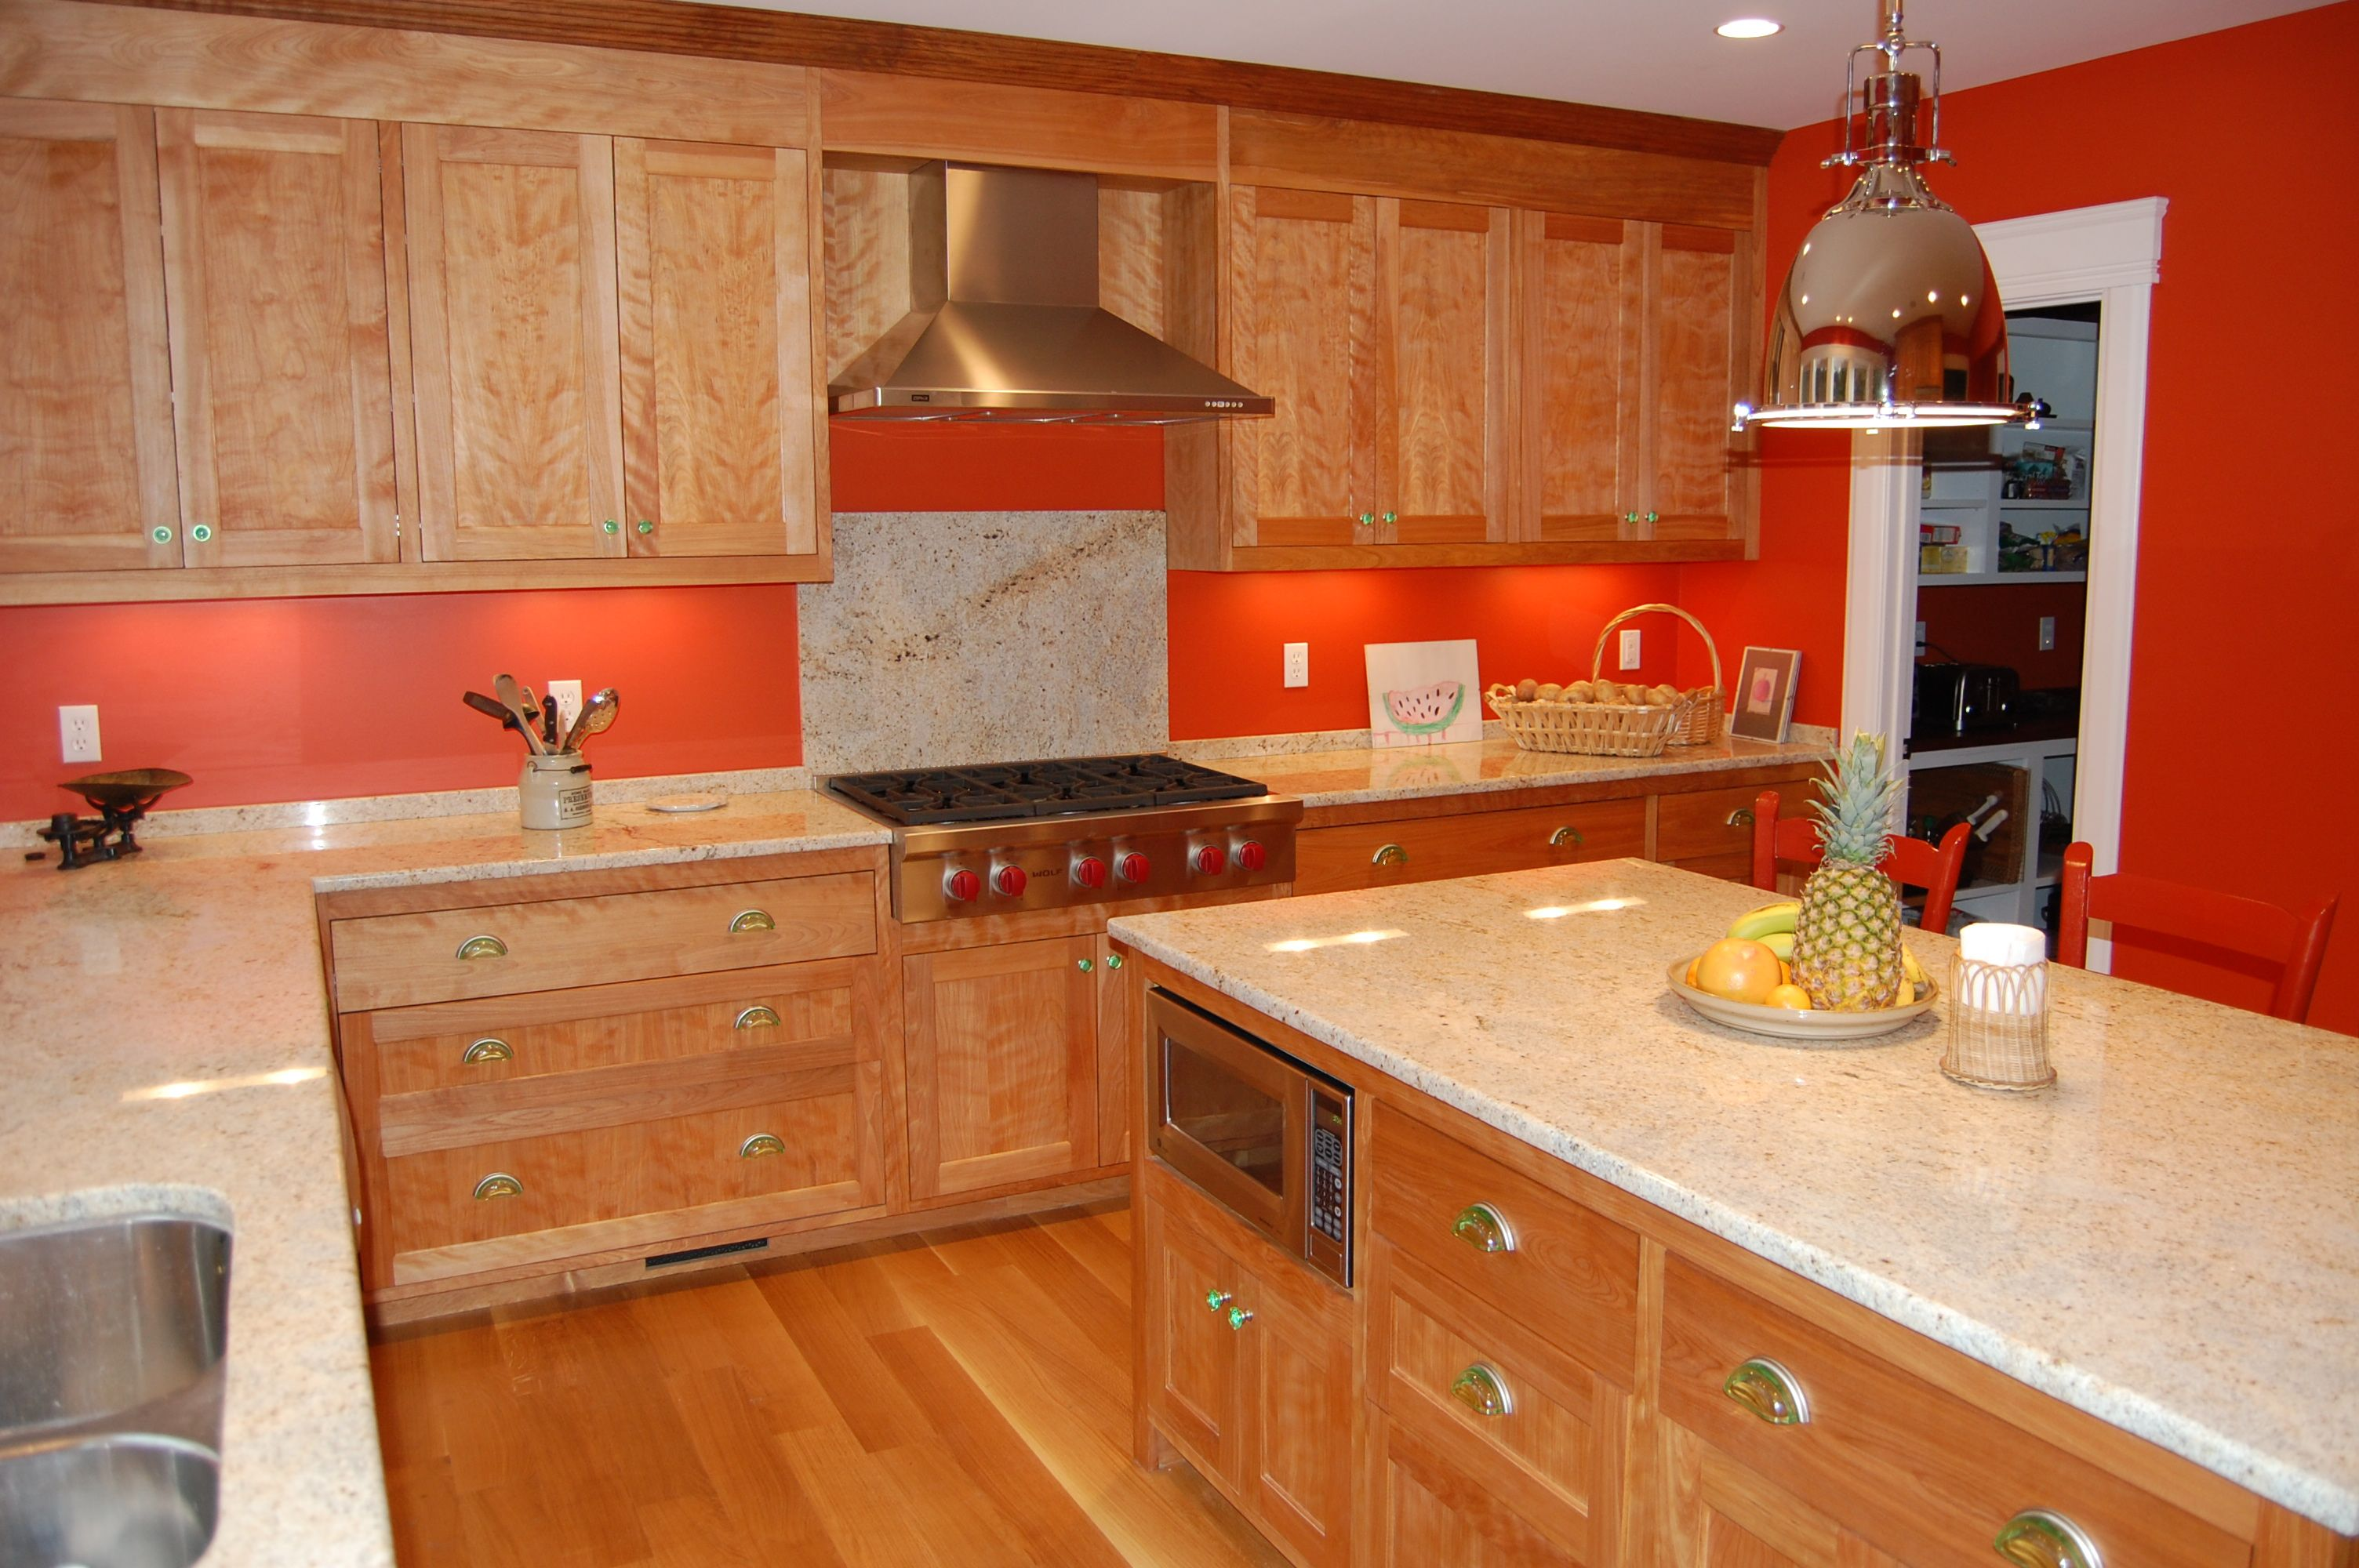 Charles shafer kitchen renovation bath madison ct 06443 for Birch wood kitchen cabinets